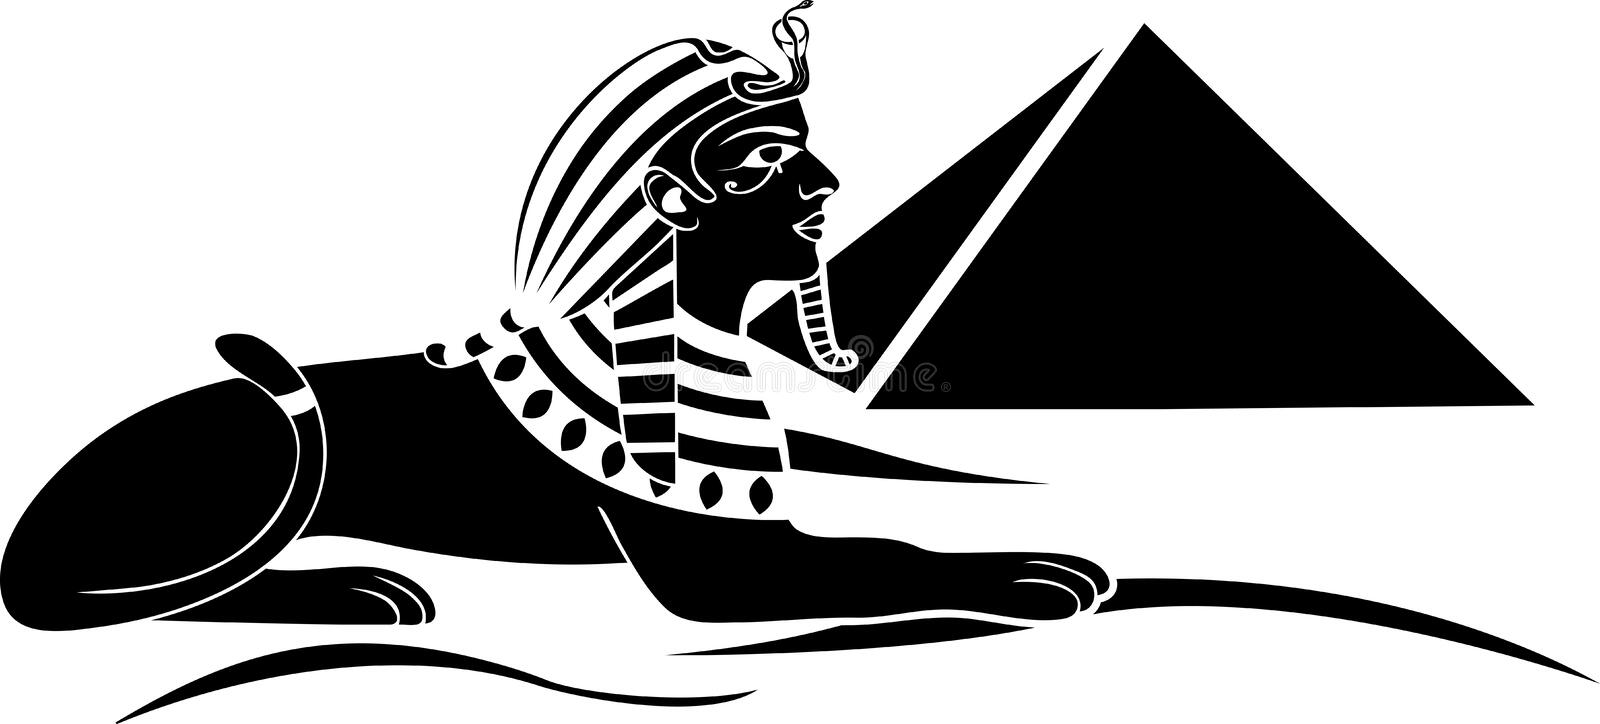 egyptian sphinx stock vector illustration of human sculpture rh dreamstime com sphinx clip art images great sphinx clipart